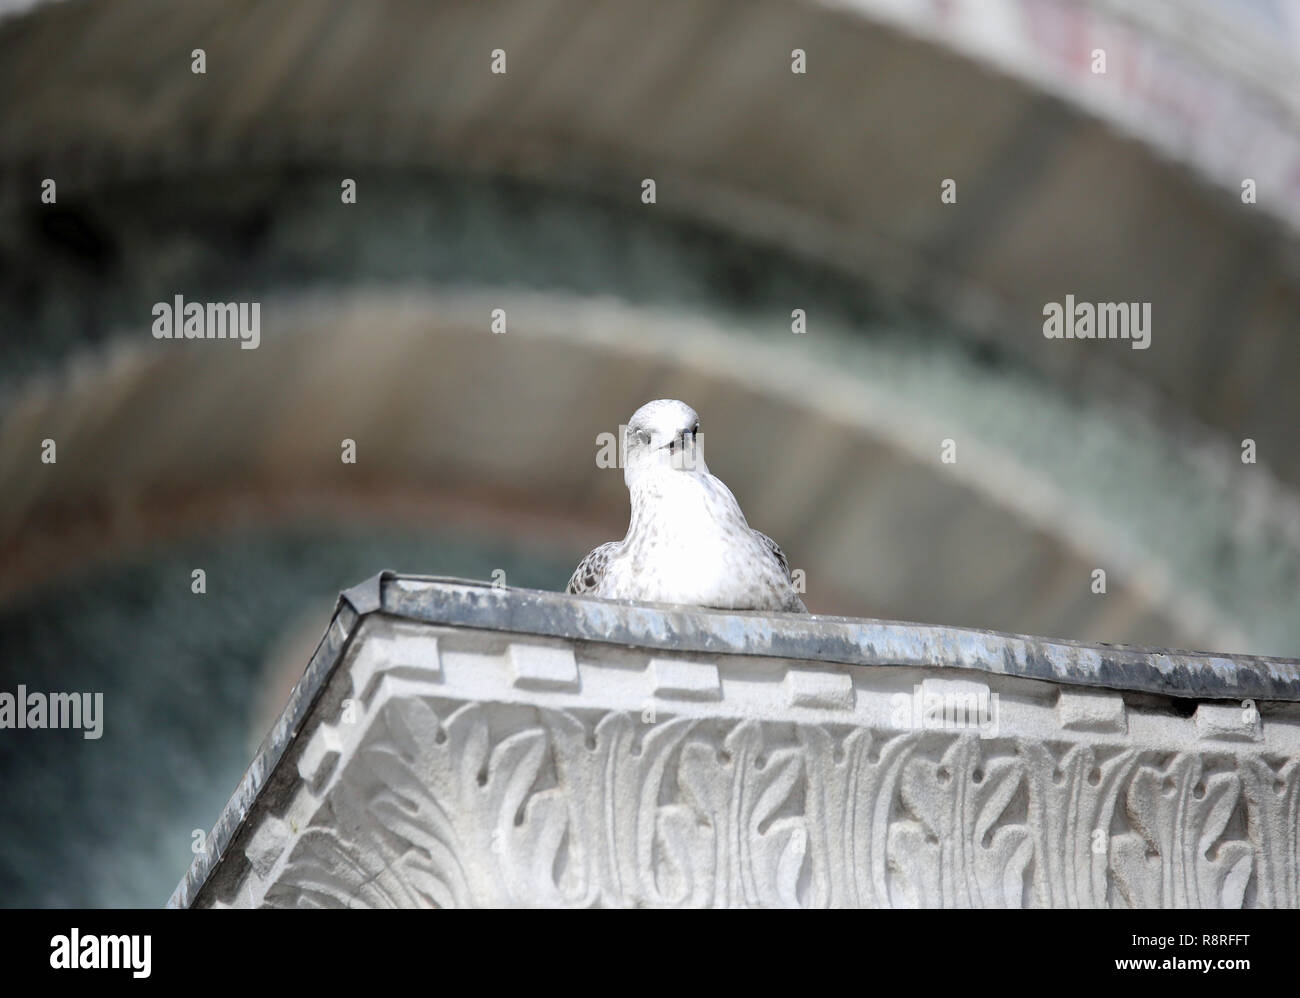 curious seagull looks at the photographer from above a decorated column - Stock Image